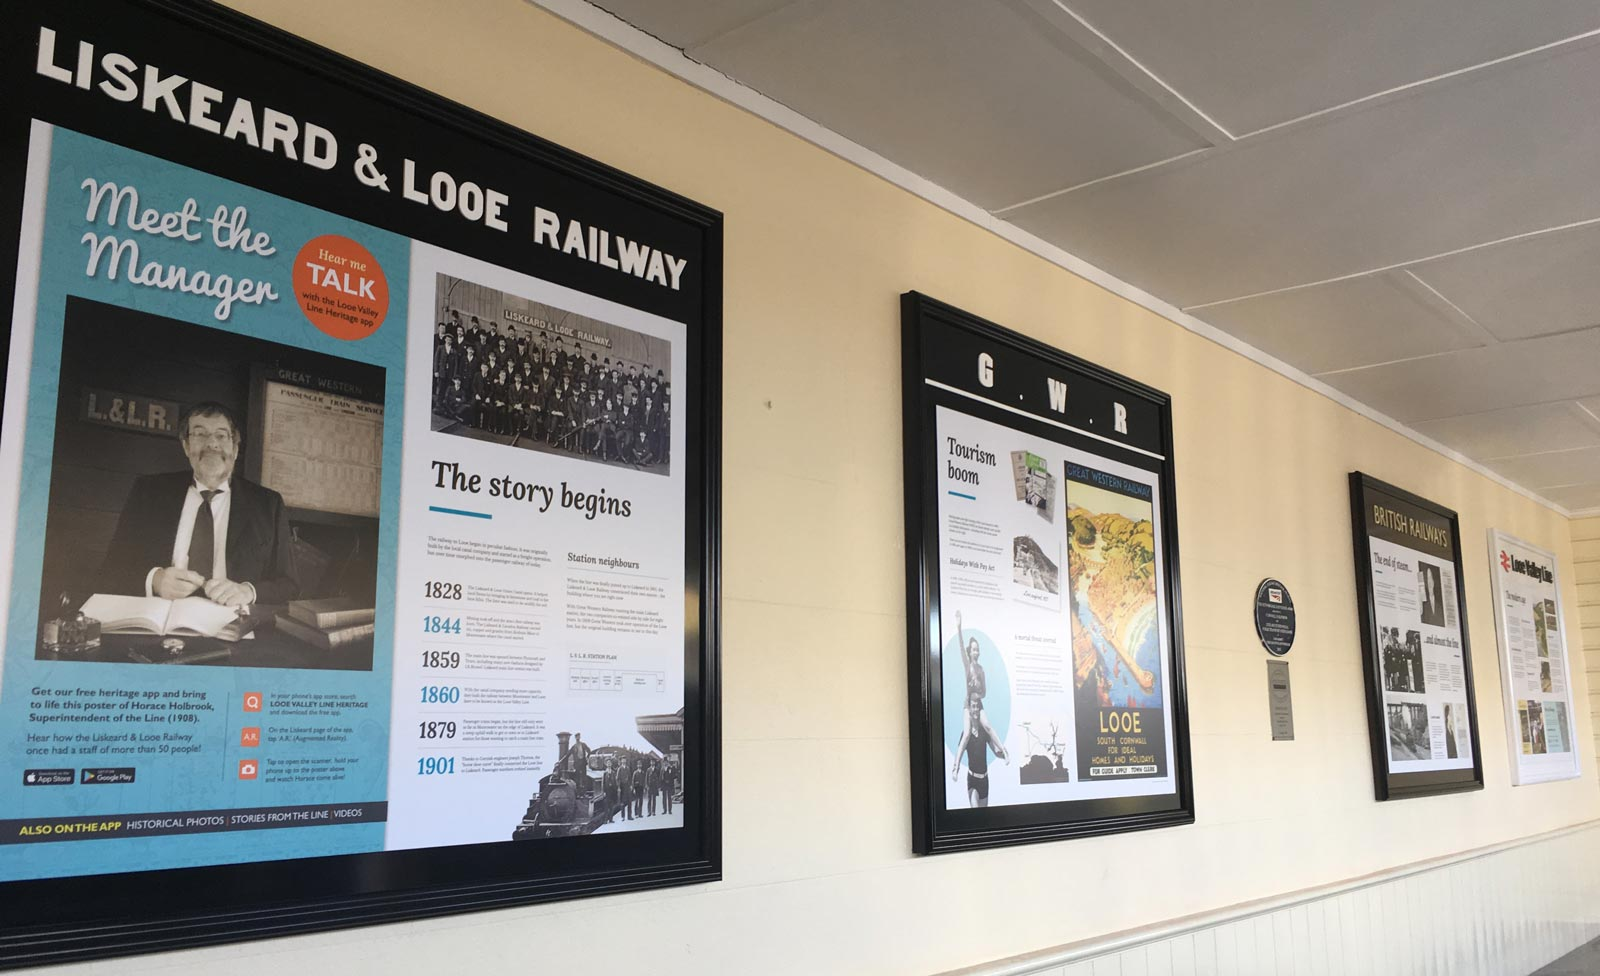 Interpretation boards at Liskeard station